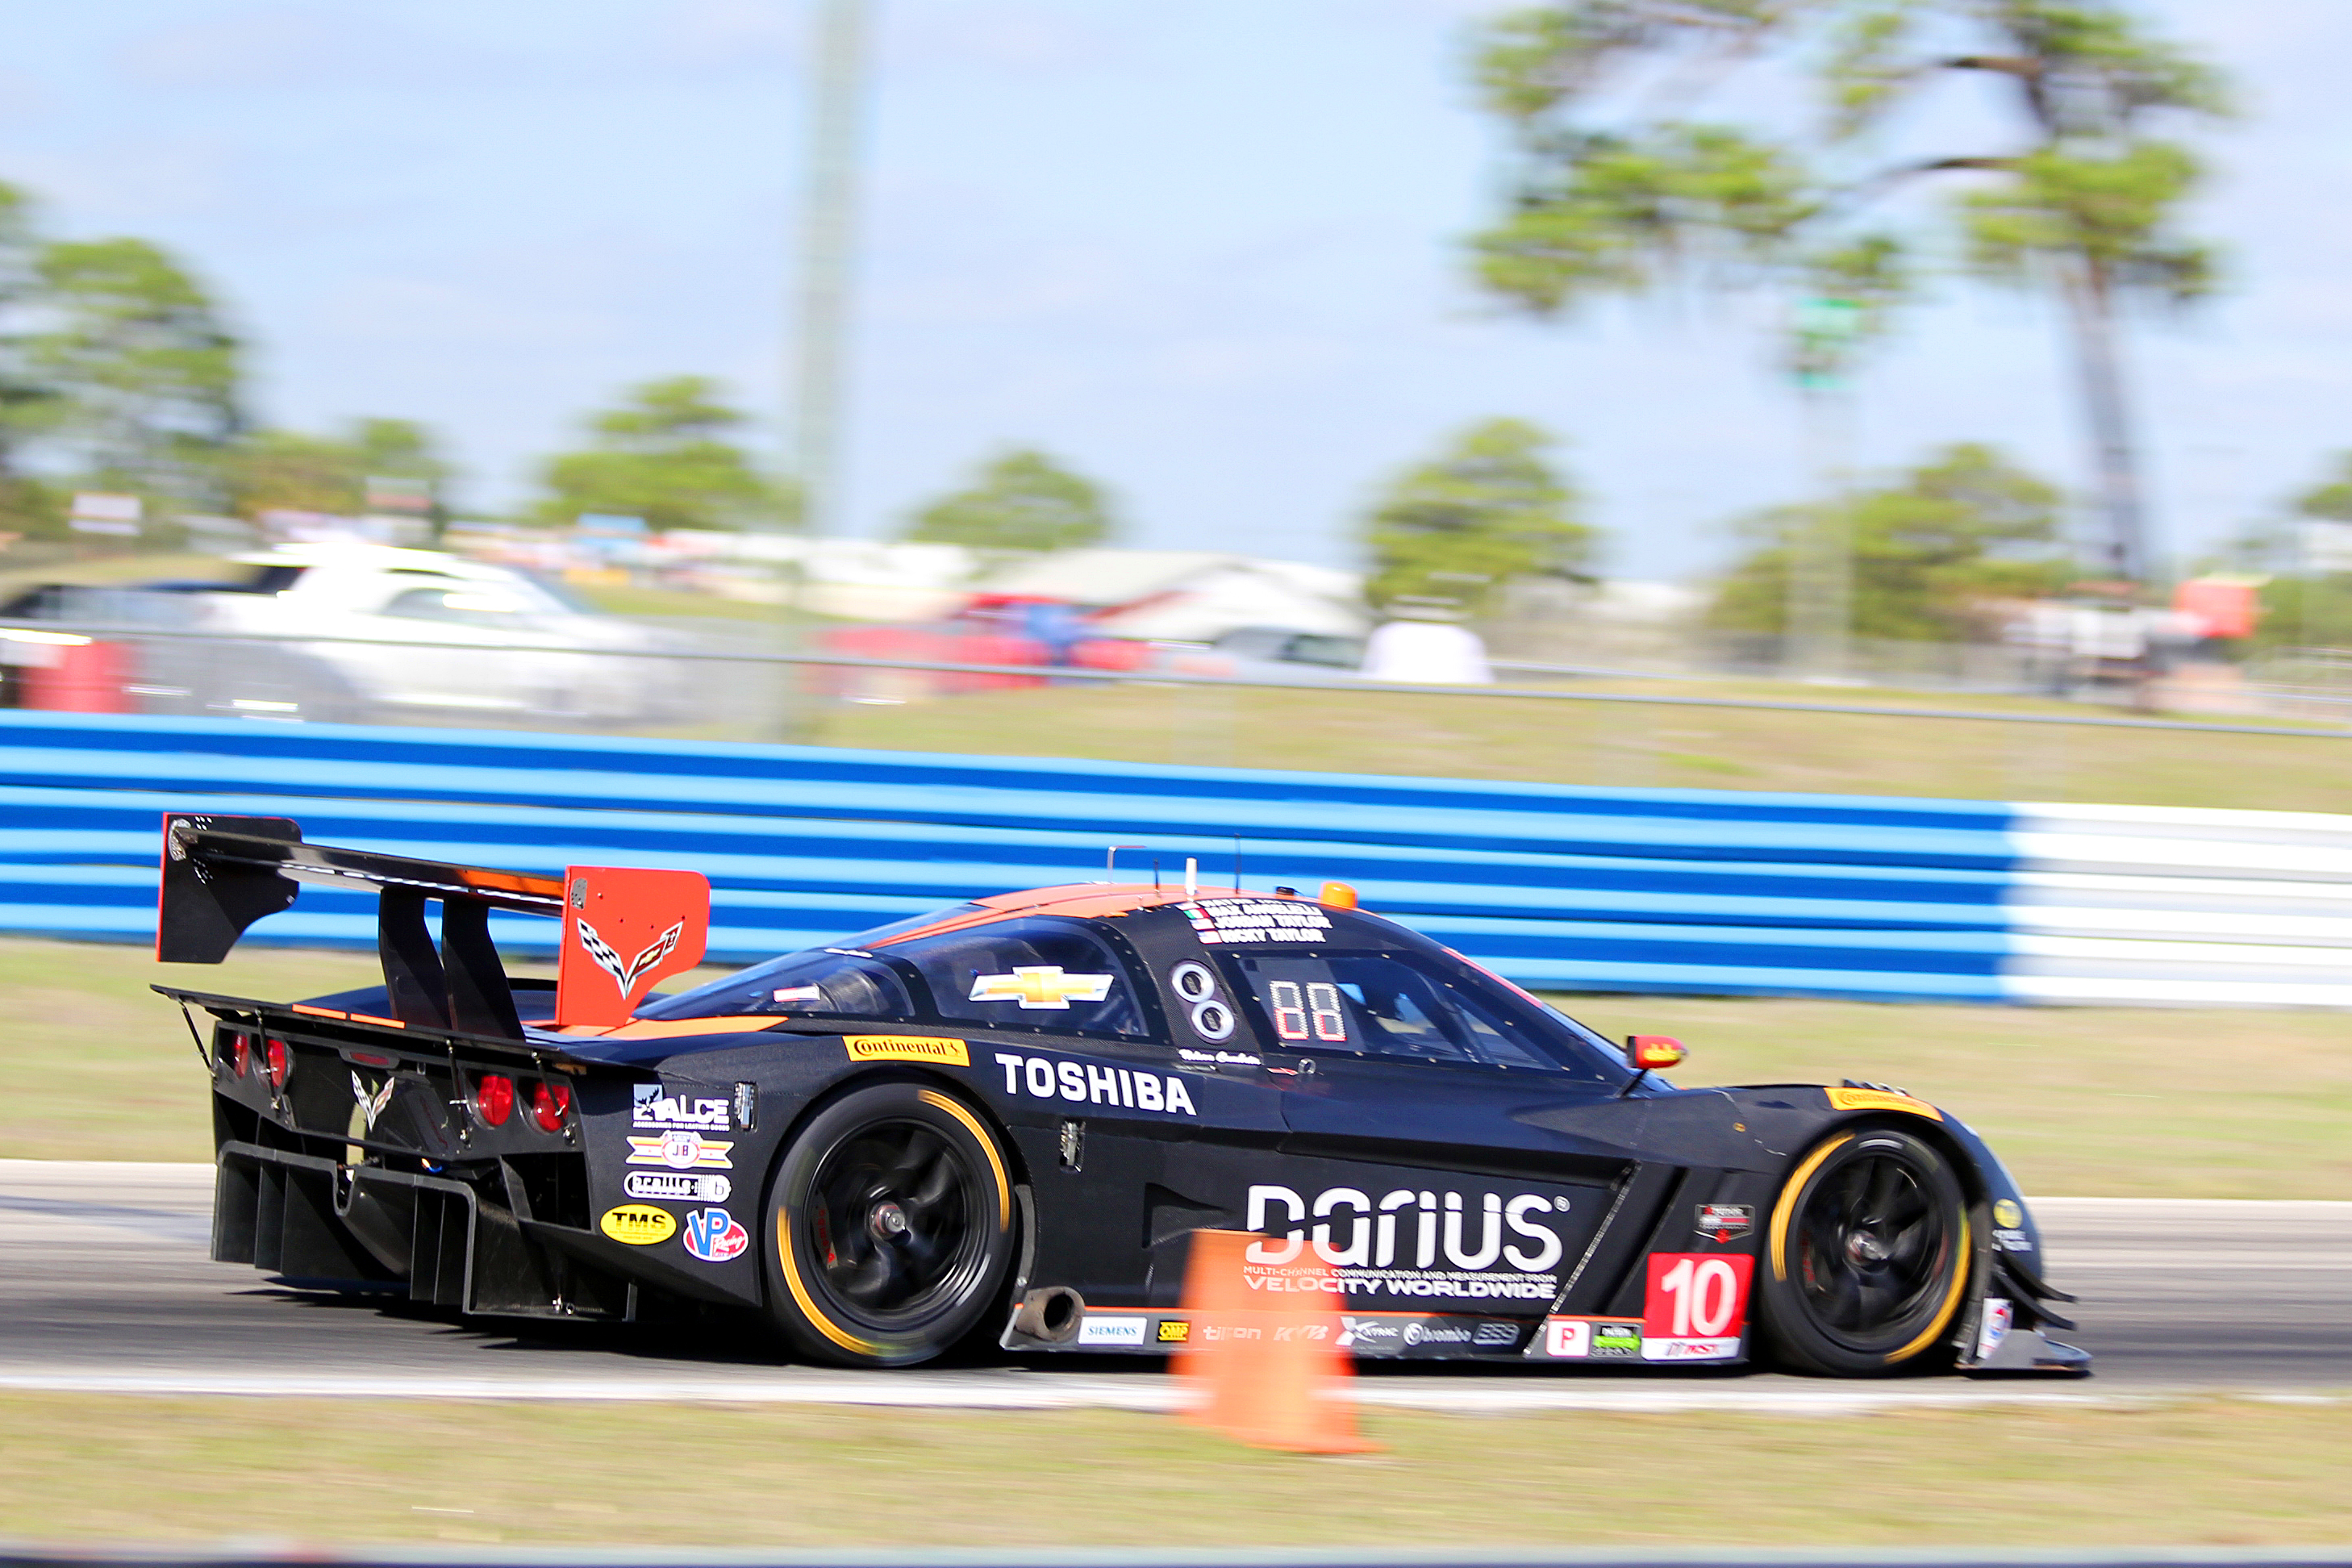 The #10 DP Wayne Taylor Racing Dallara-Corvette was second quickest; this shot shows the new rear diffuser. (Chris Jasurek/Epoch Times)